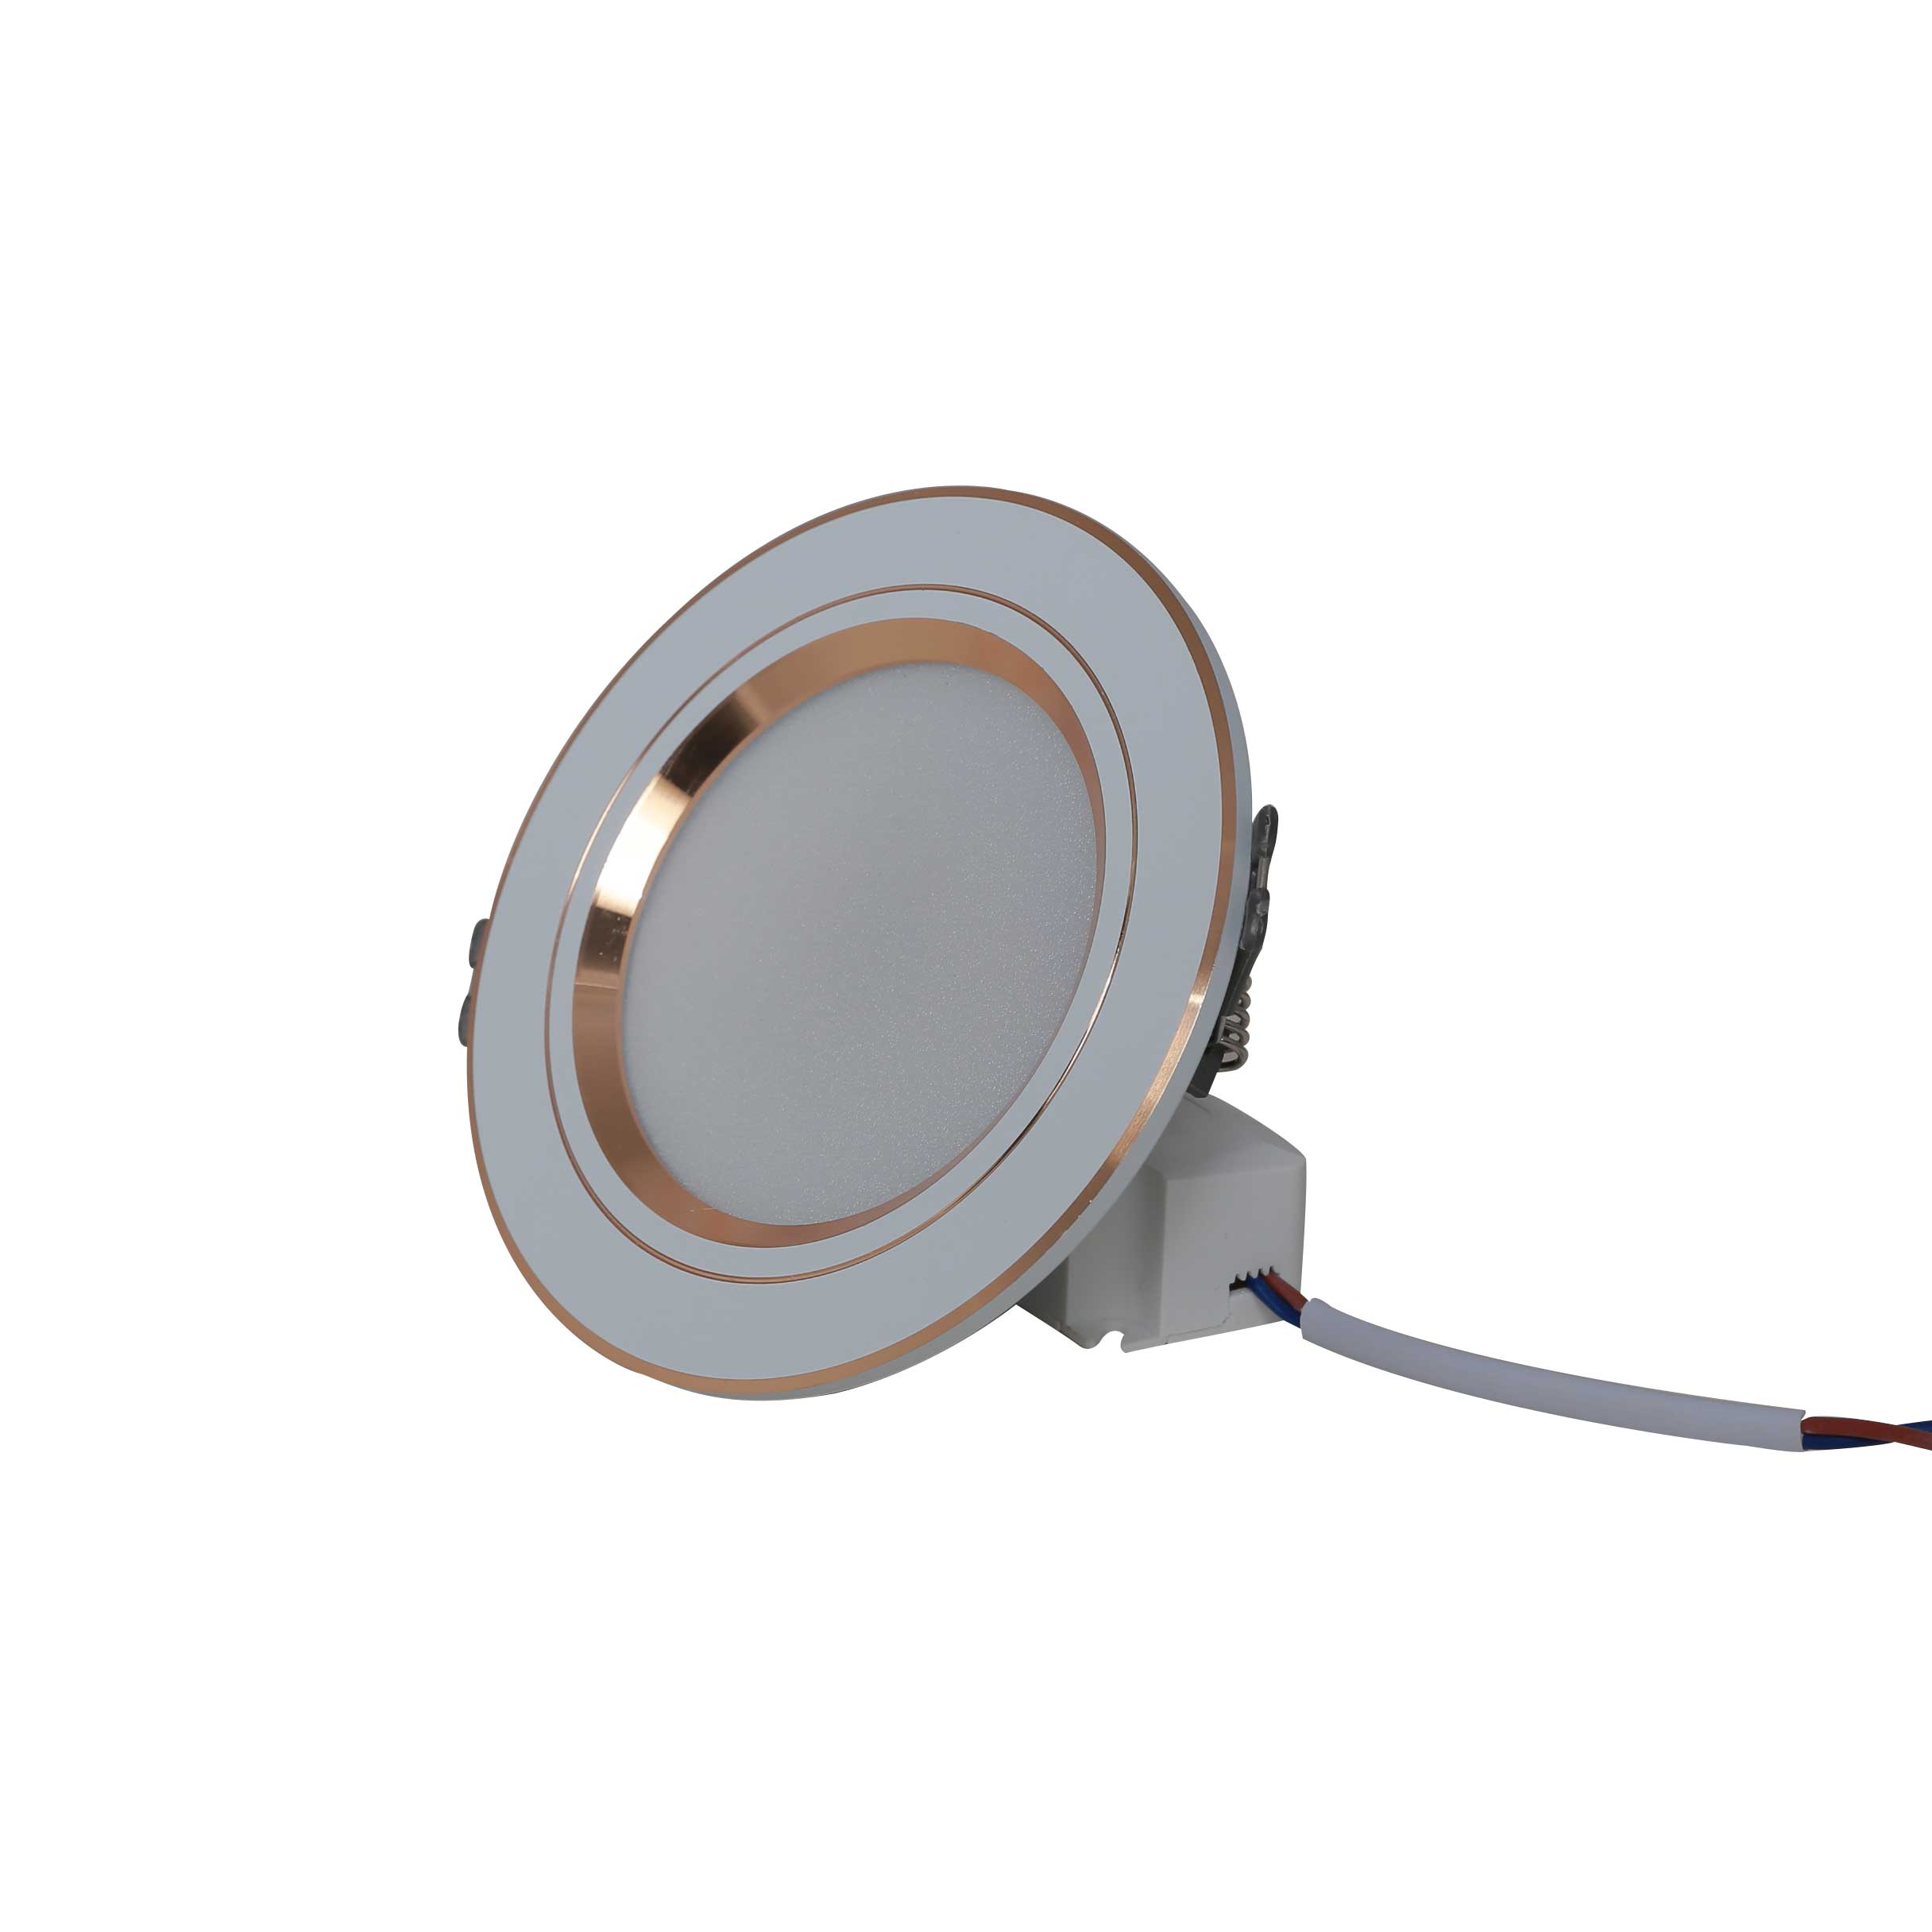 Đèn LED Downlight đổi màu AT10 90/7W SS